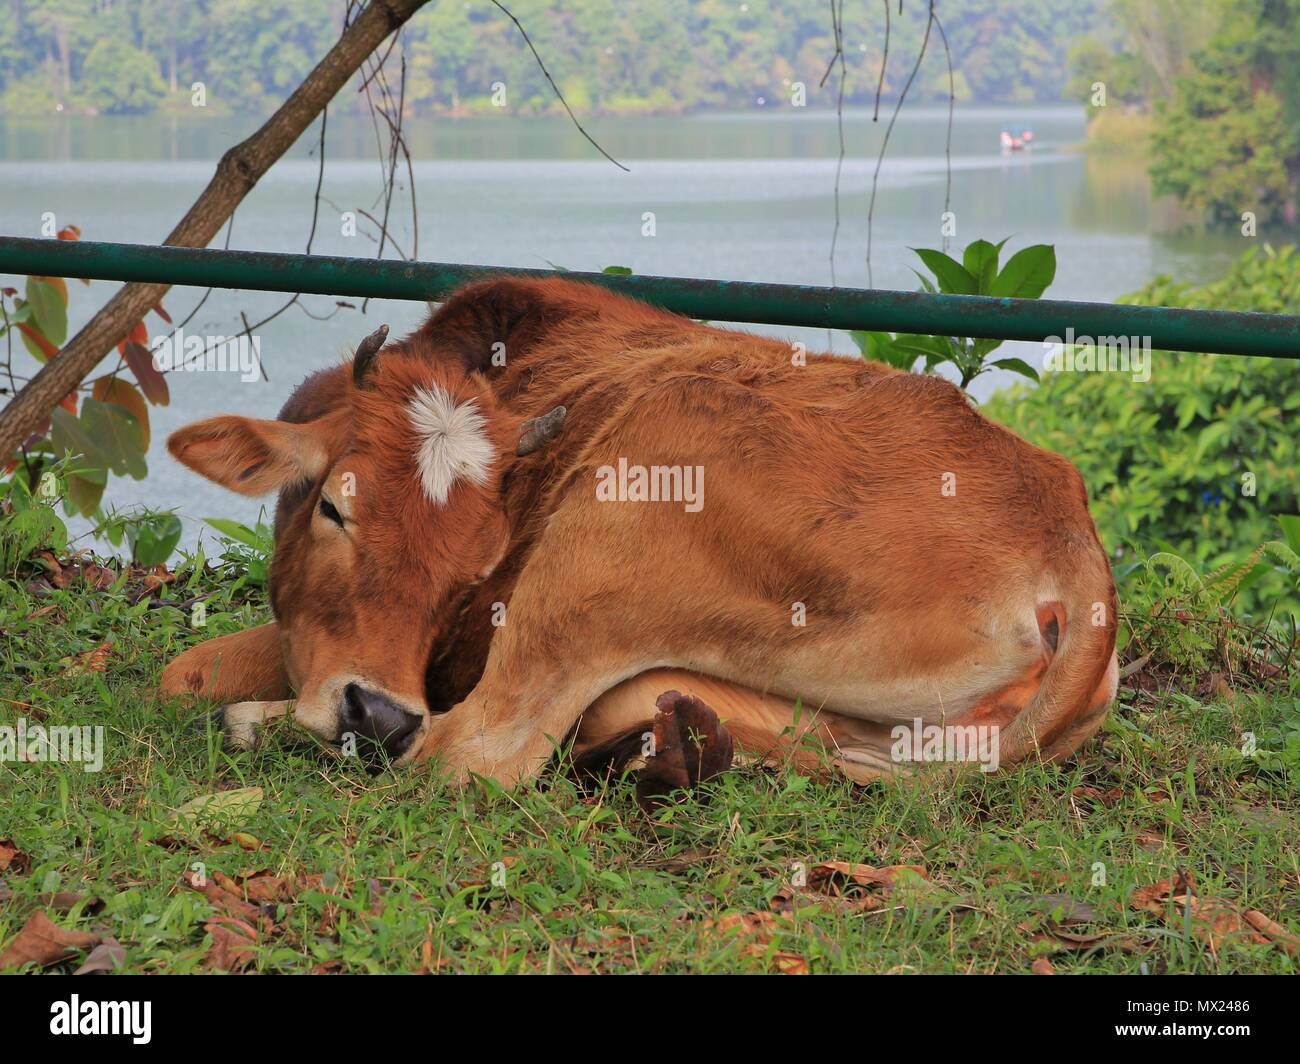 Sleeping cow at the shore of Fewa lake, Pokhara, Nepal. - Stock Image